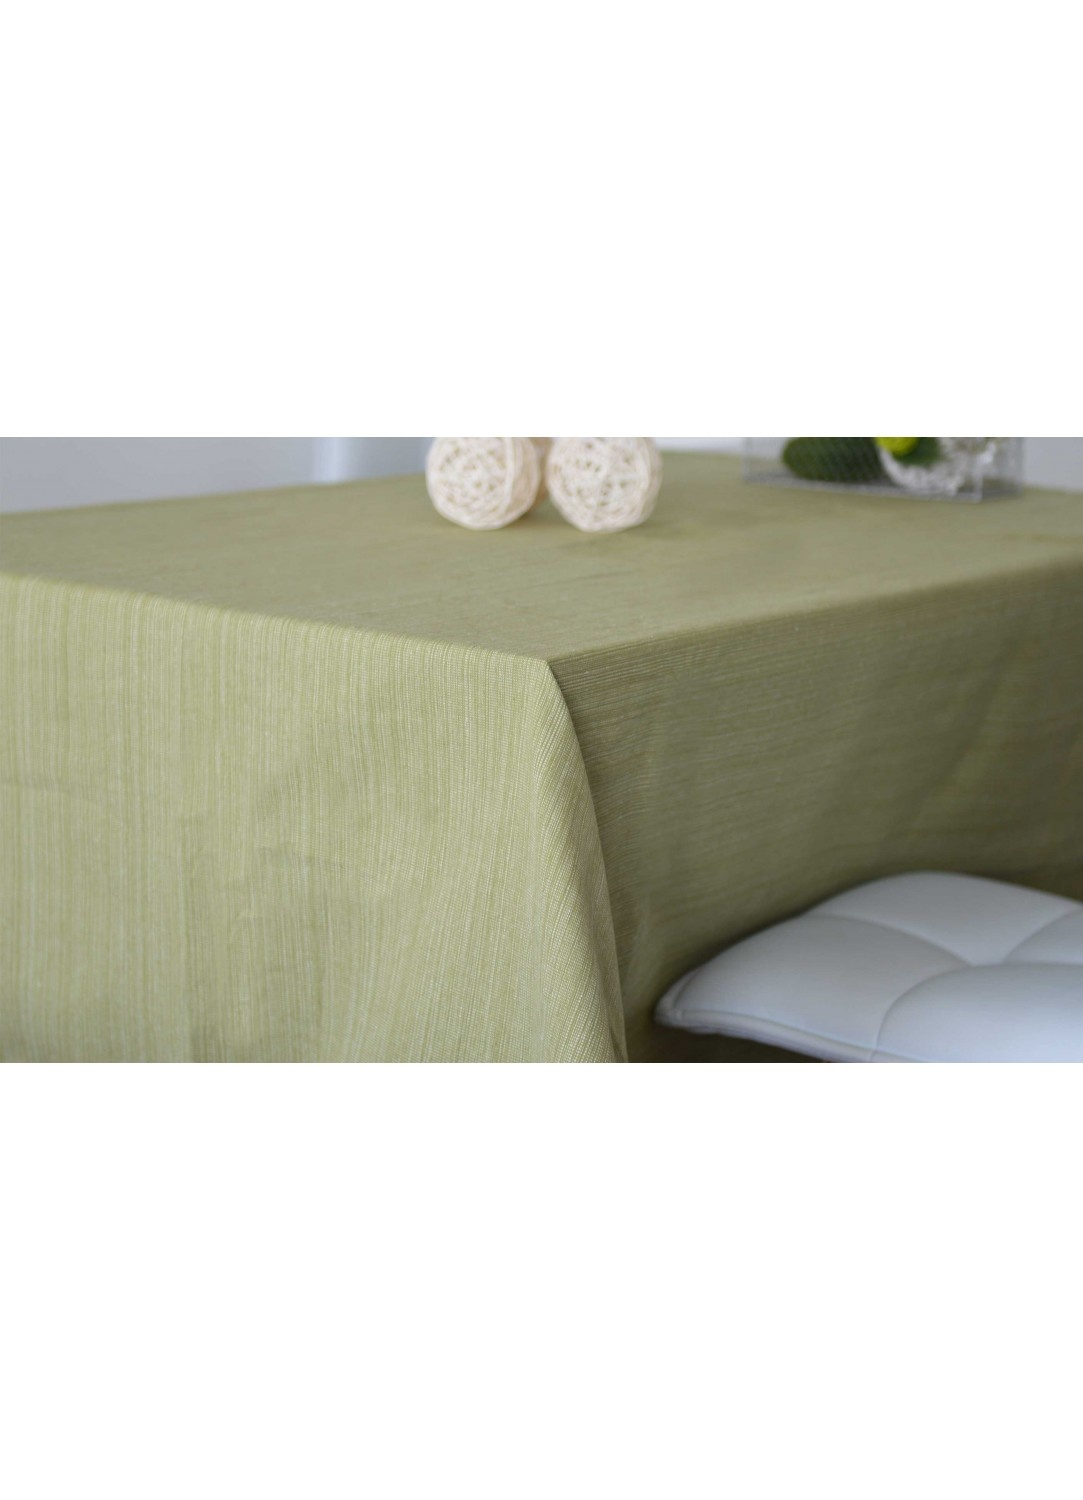 nappe rectangulaire en coton 100 recycl tilleul taupe lin gris naturel. Black Bedroom Furniture Sets. Home Design Ideas